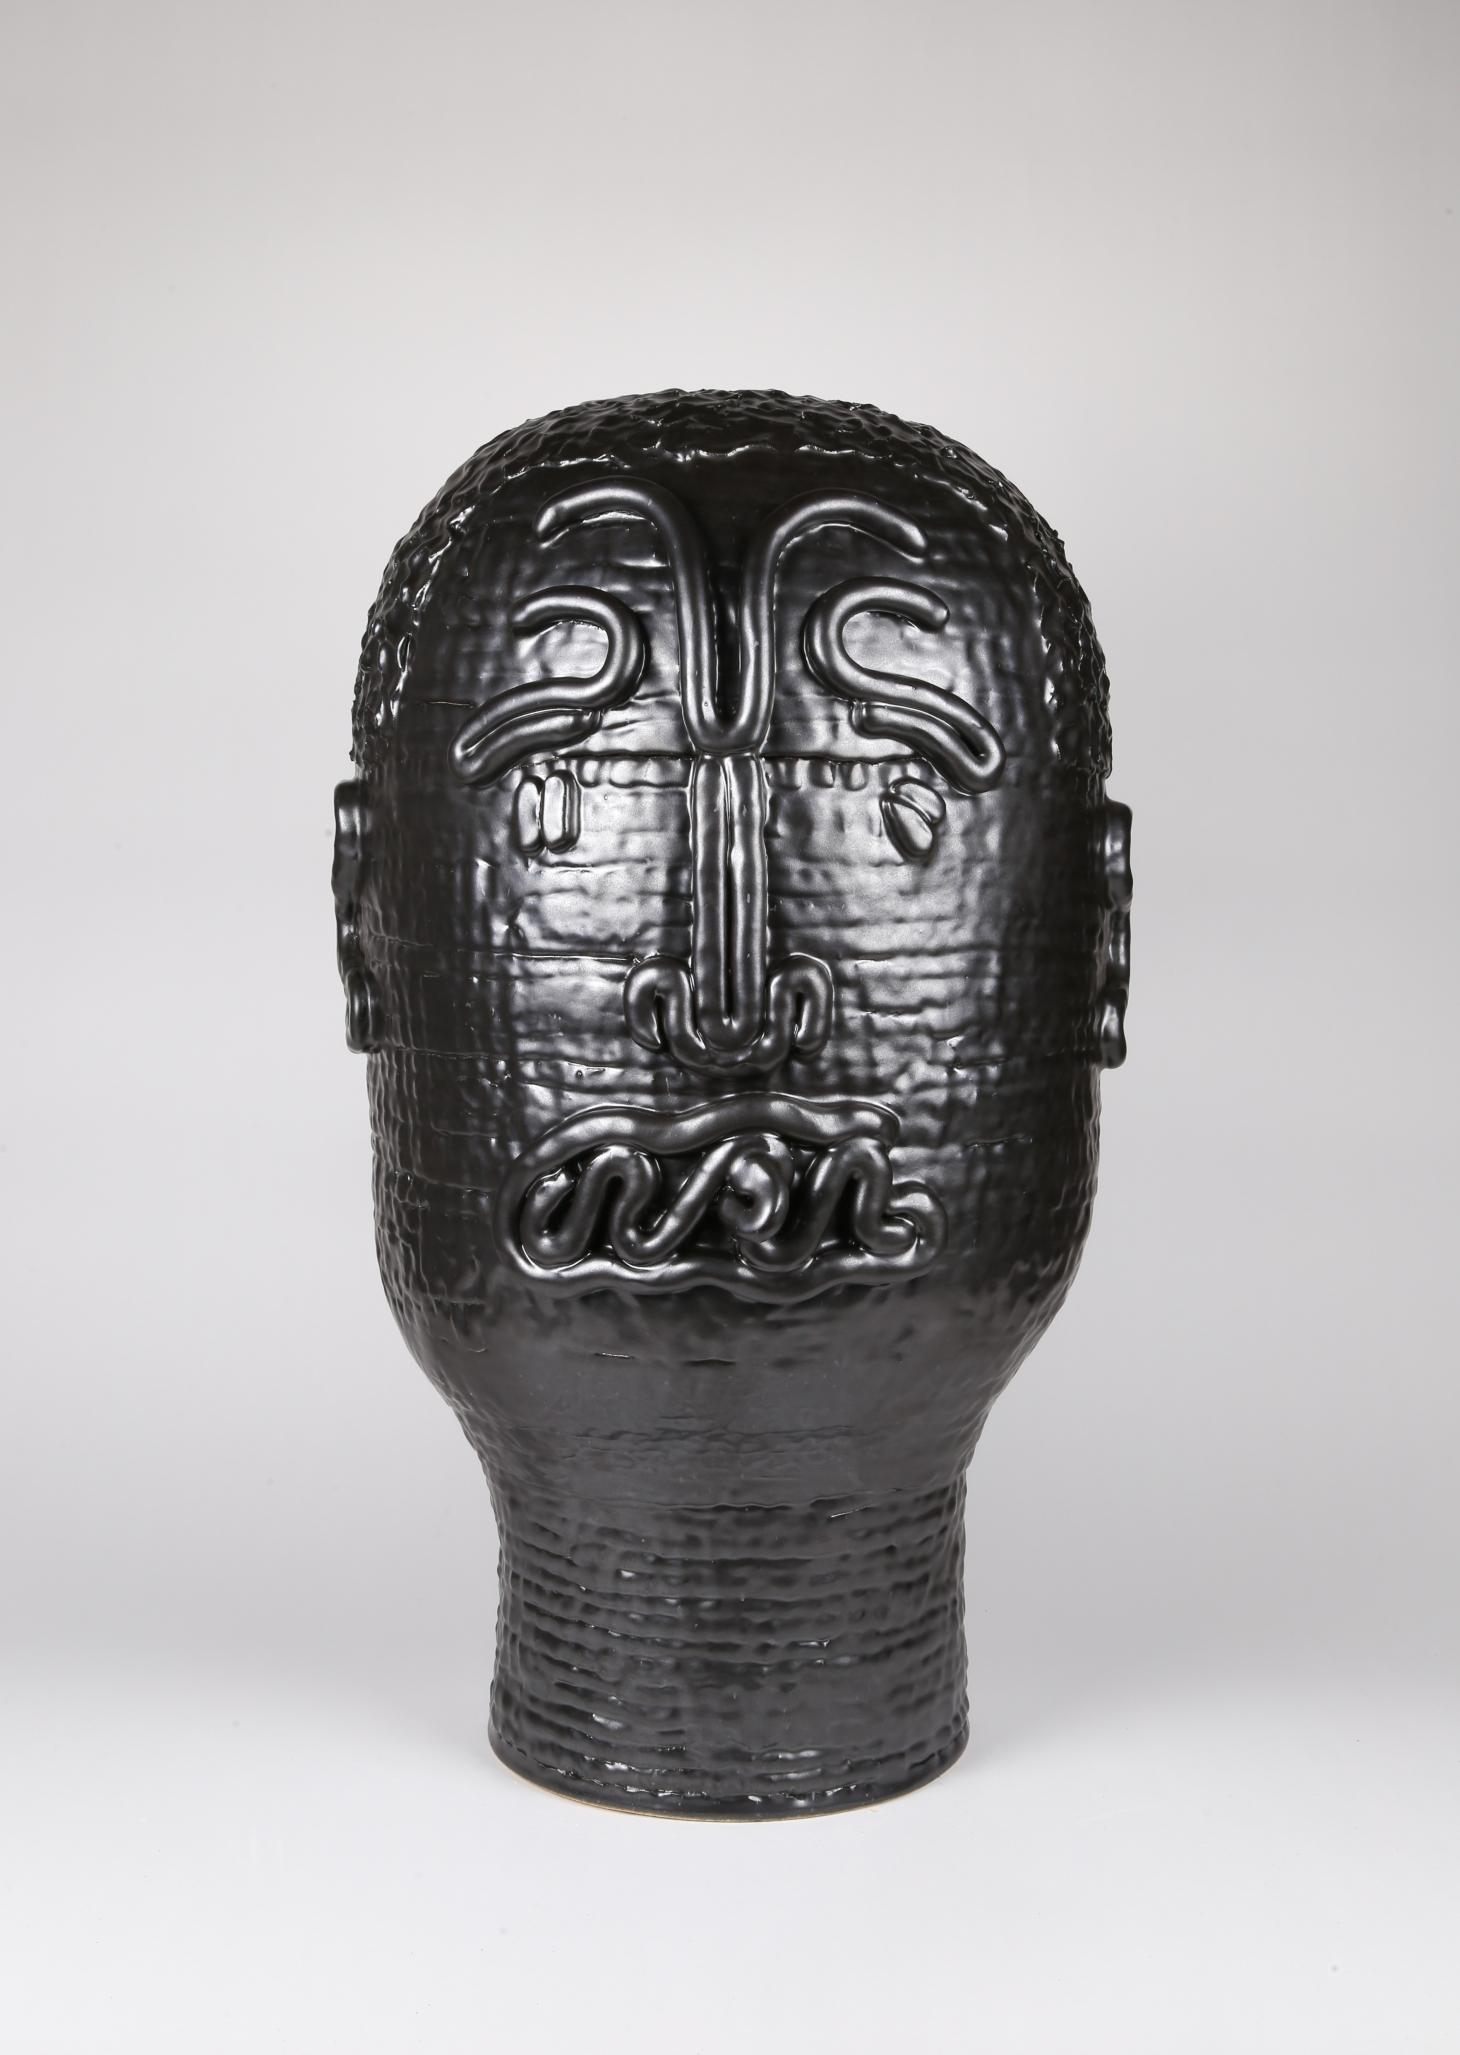 Black ceramic sculpture depicting a human face in stylized form